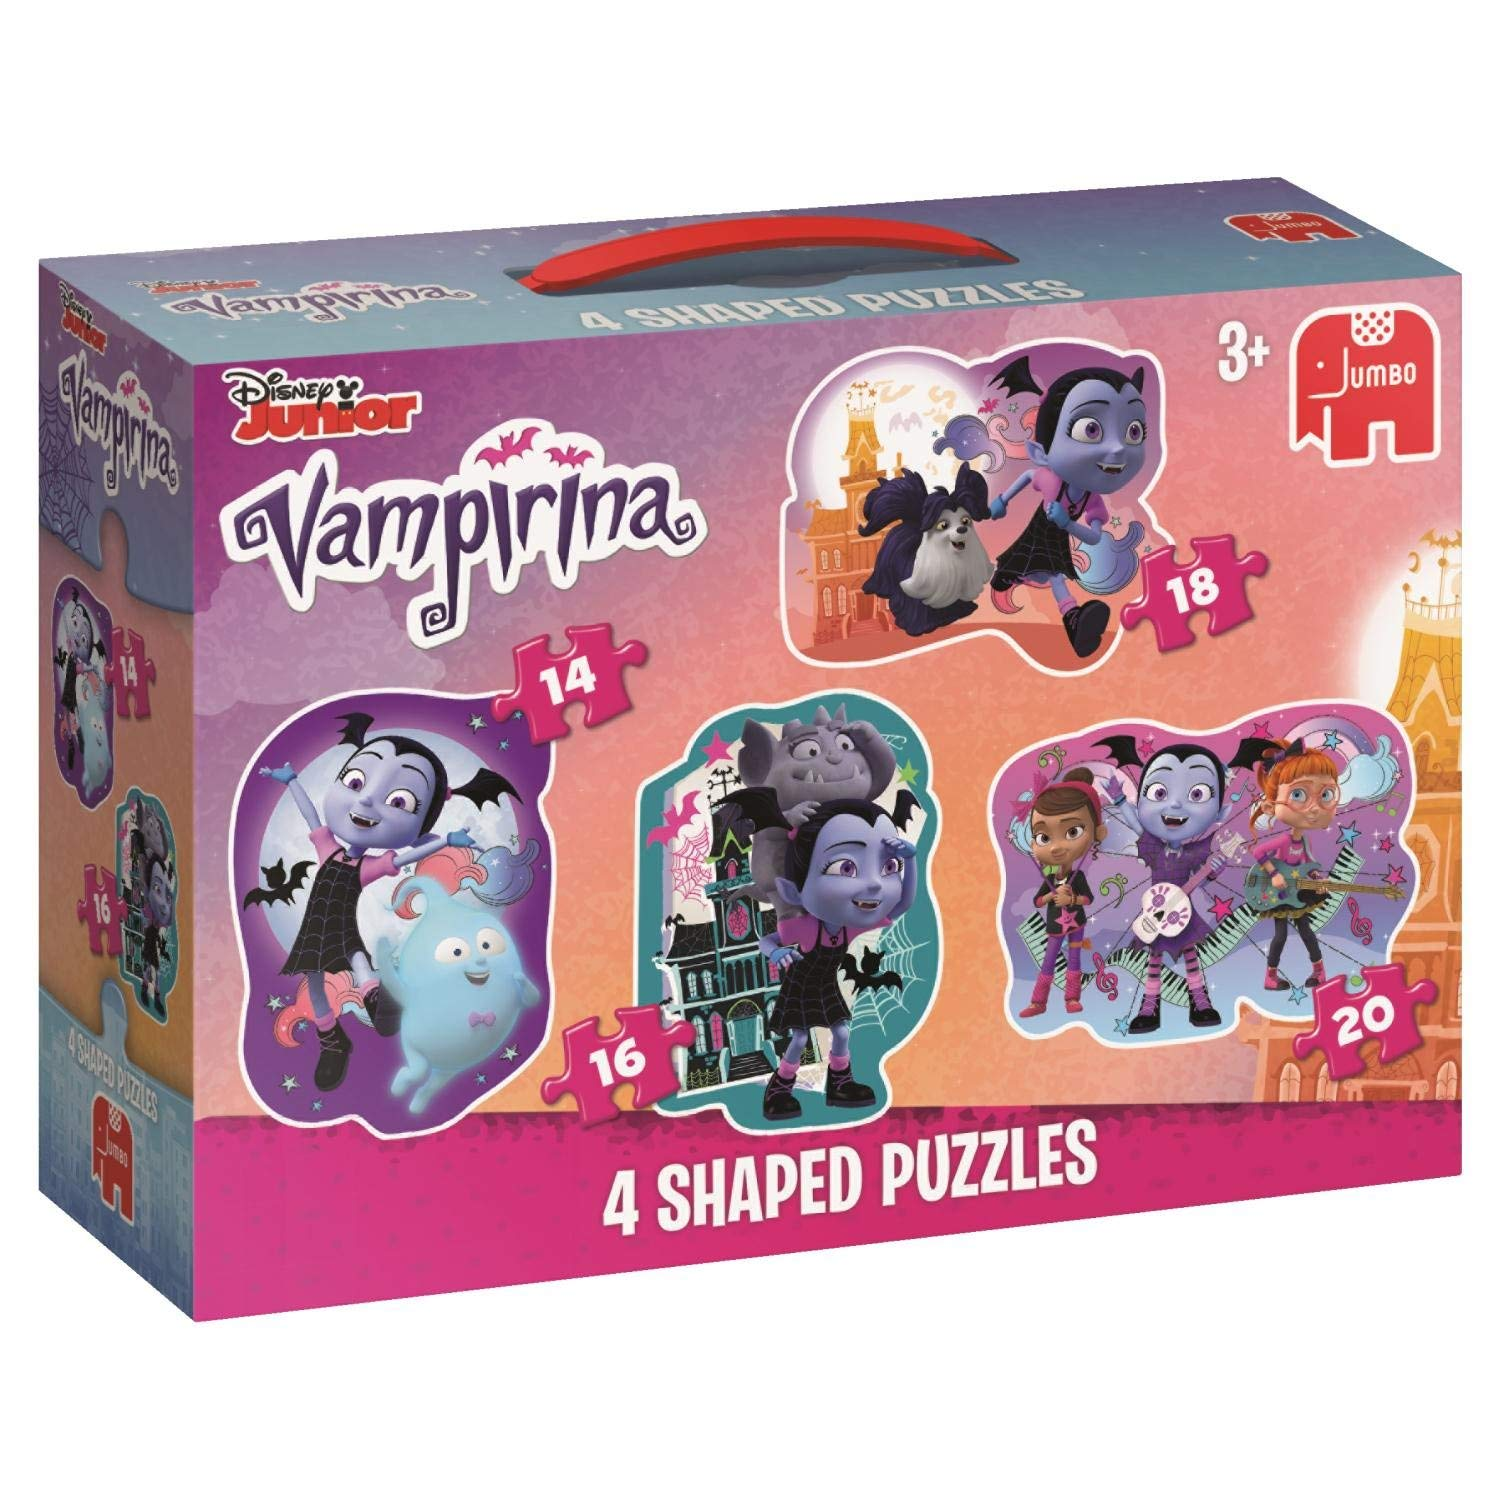 Vampirina 4 in a Box Puzzles 14 16 18 20 Ages 4 and Up Vampire